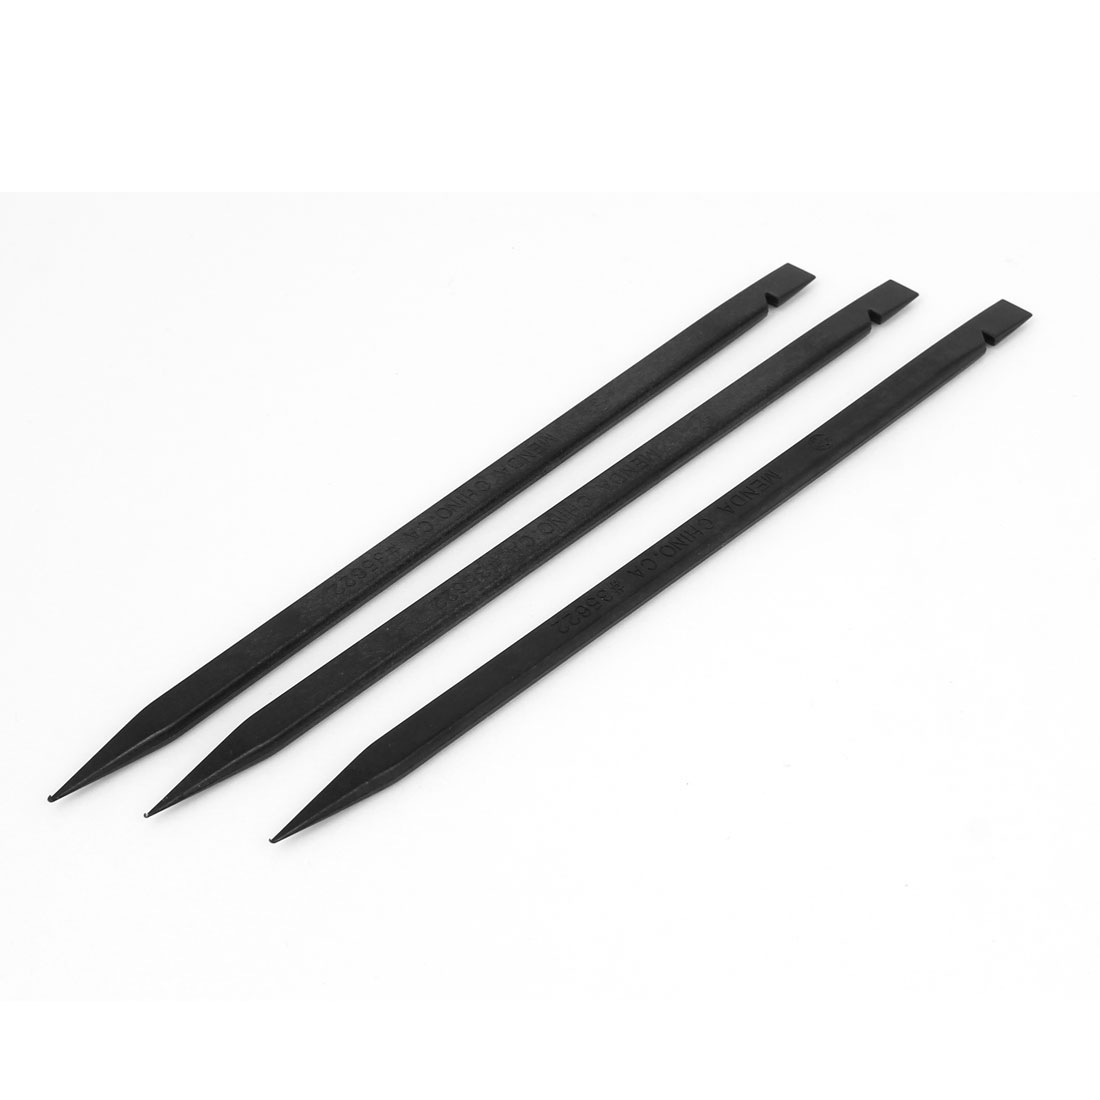 3pcs Plastic Pointy Tip Stick Opening Repair Tool for Cell Phone